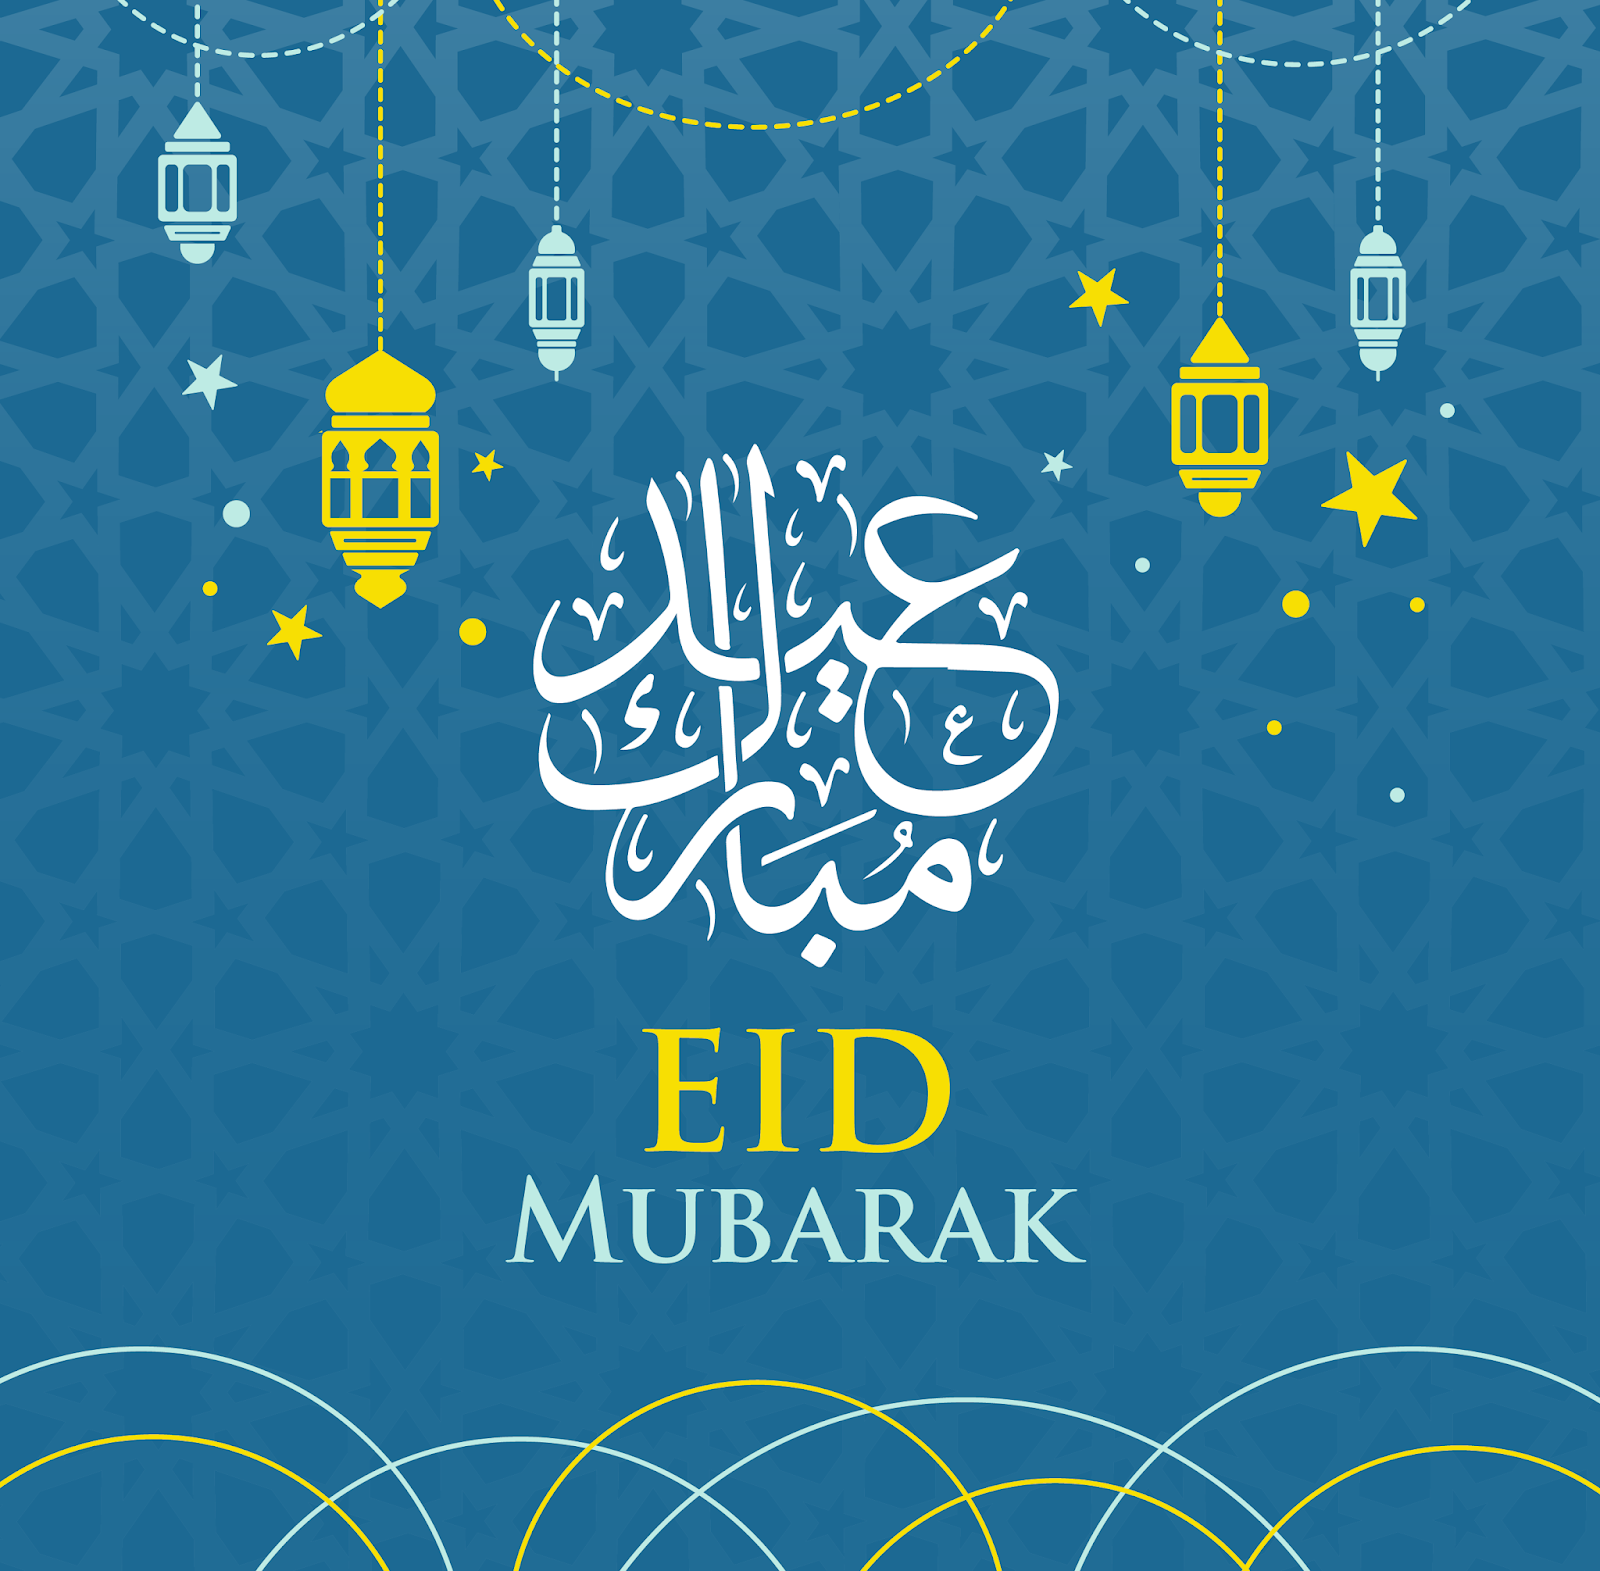 Eid Mubarak 2020 Images | HD Wallpapers | Pictures Free Download ...